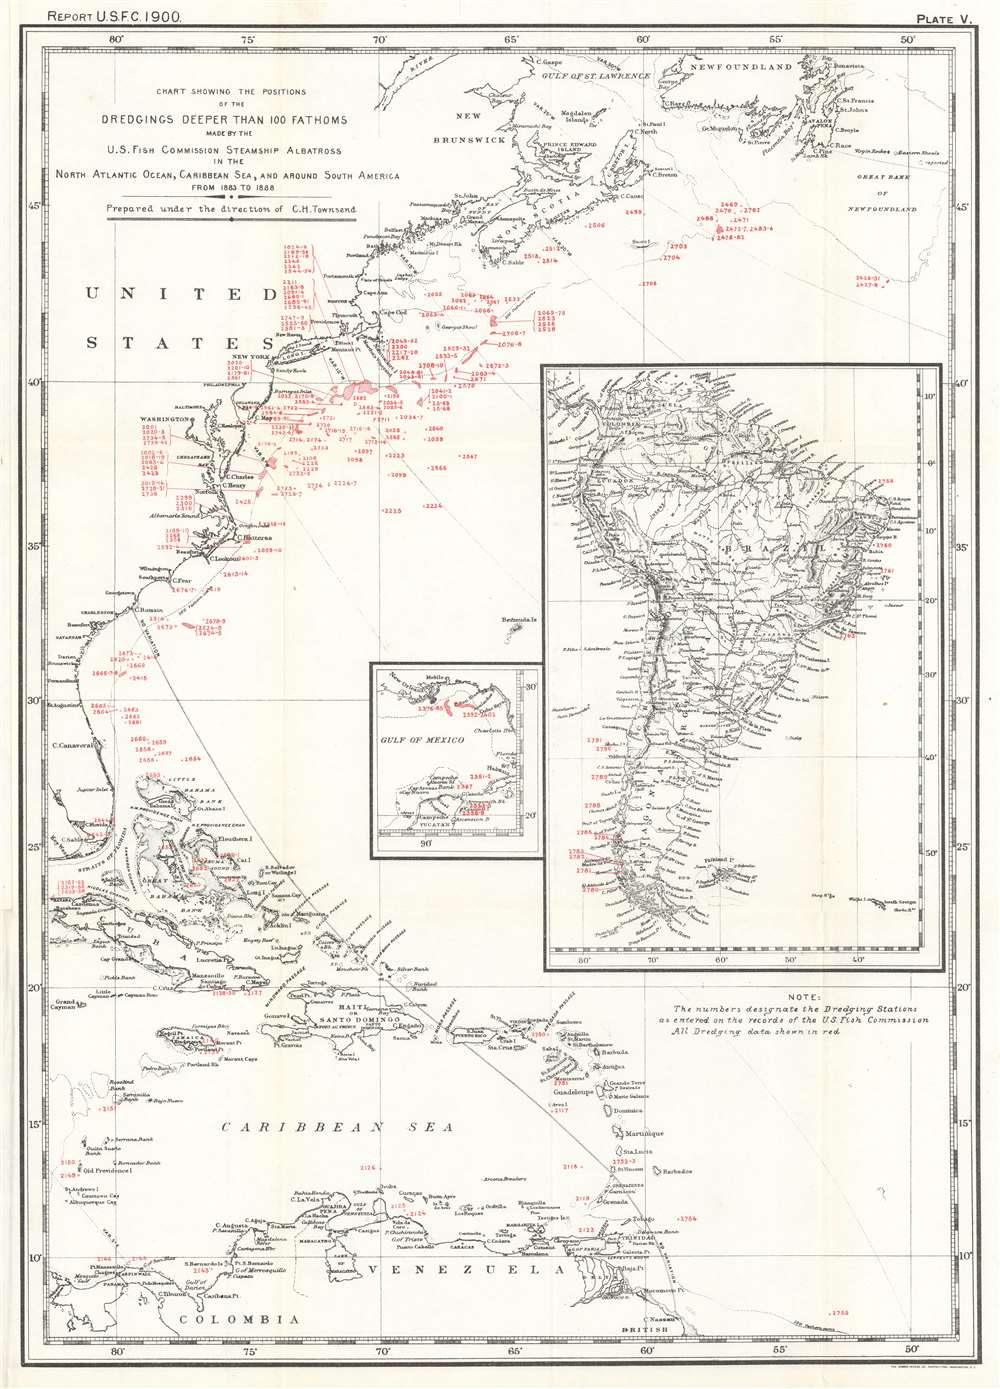 Chart Showing the Positions of the Dredgings Deeper than 100 Fathoms Made by the U.S. Fish Commission Steamship Albatross in the North Atlantic Ocean, Caribbean Sea, and around South America from 1883 to 1888. - Main View